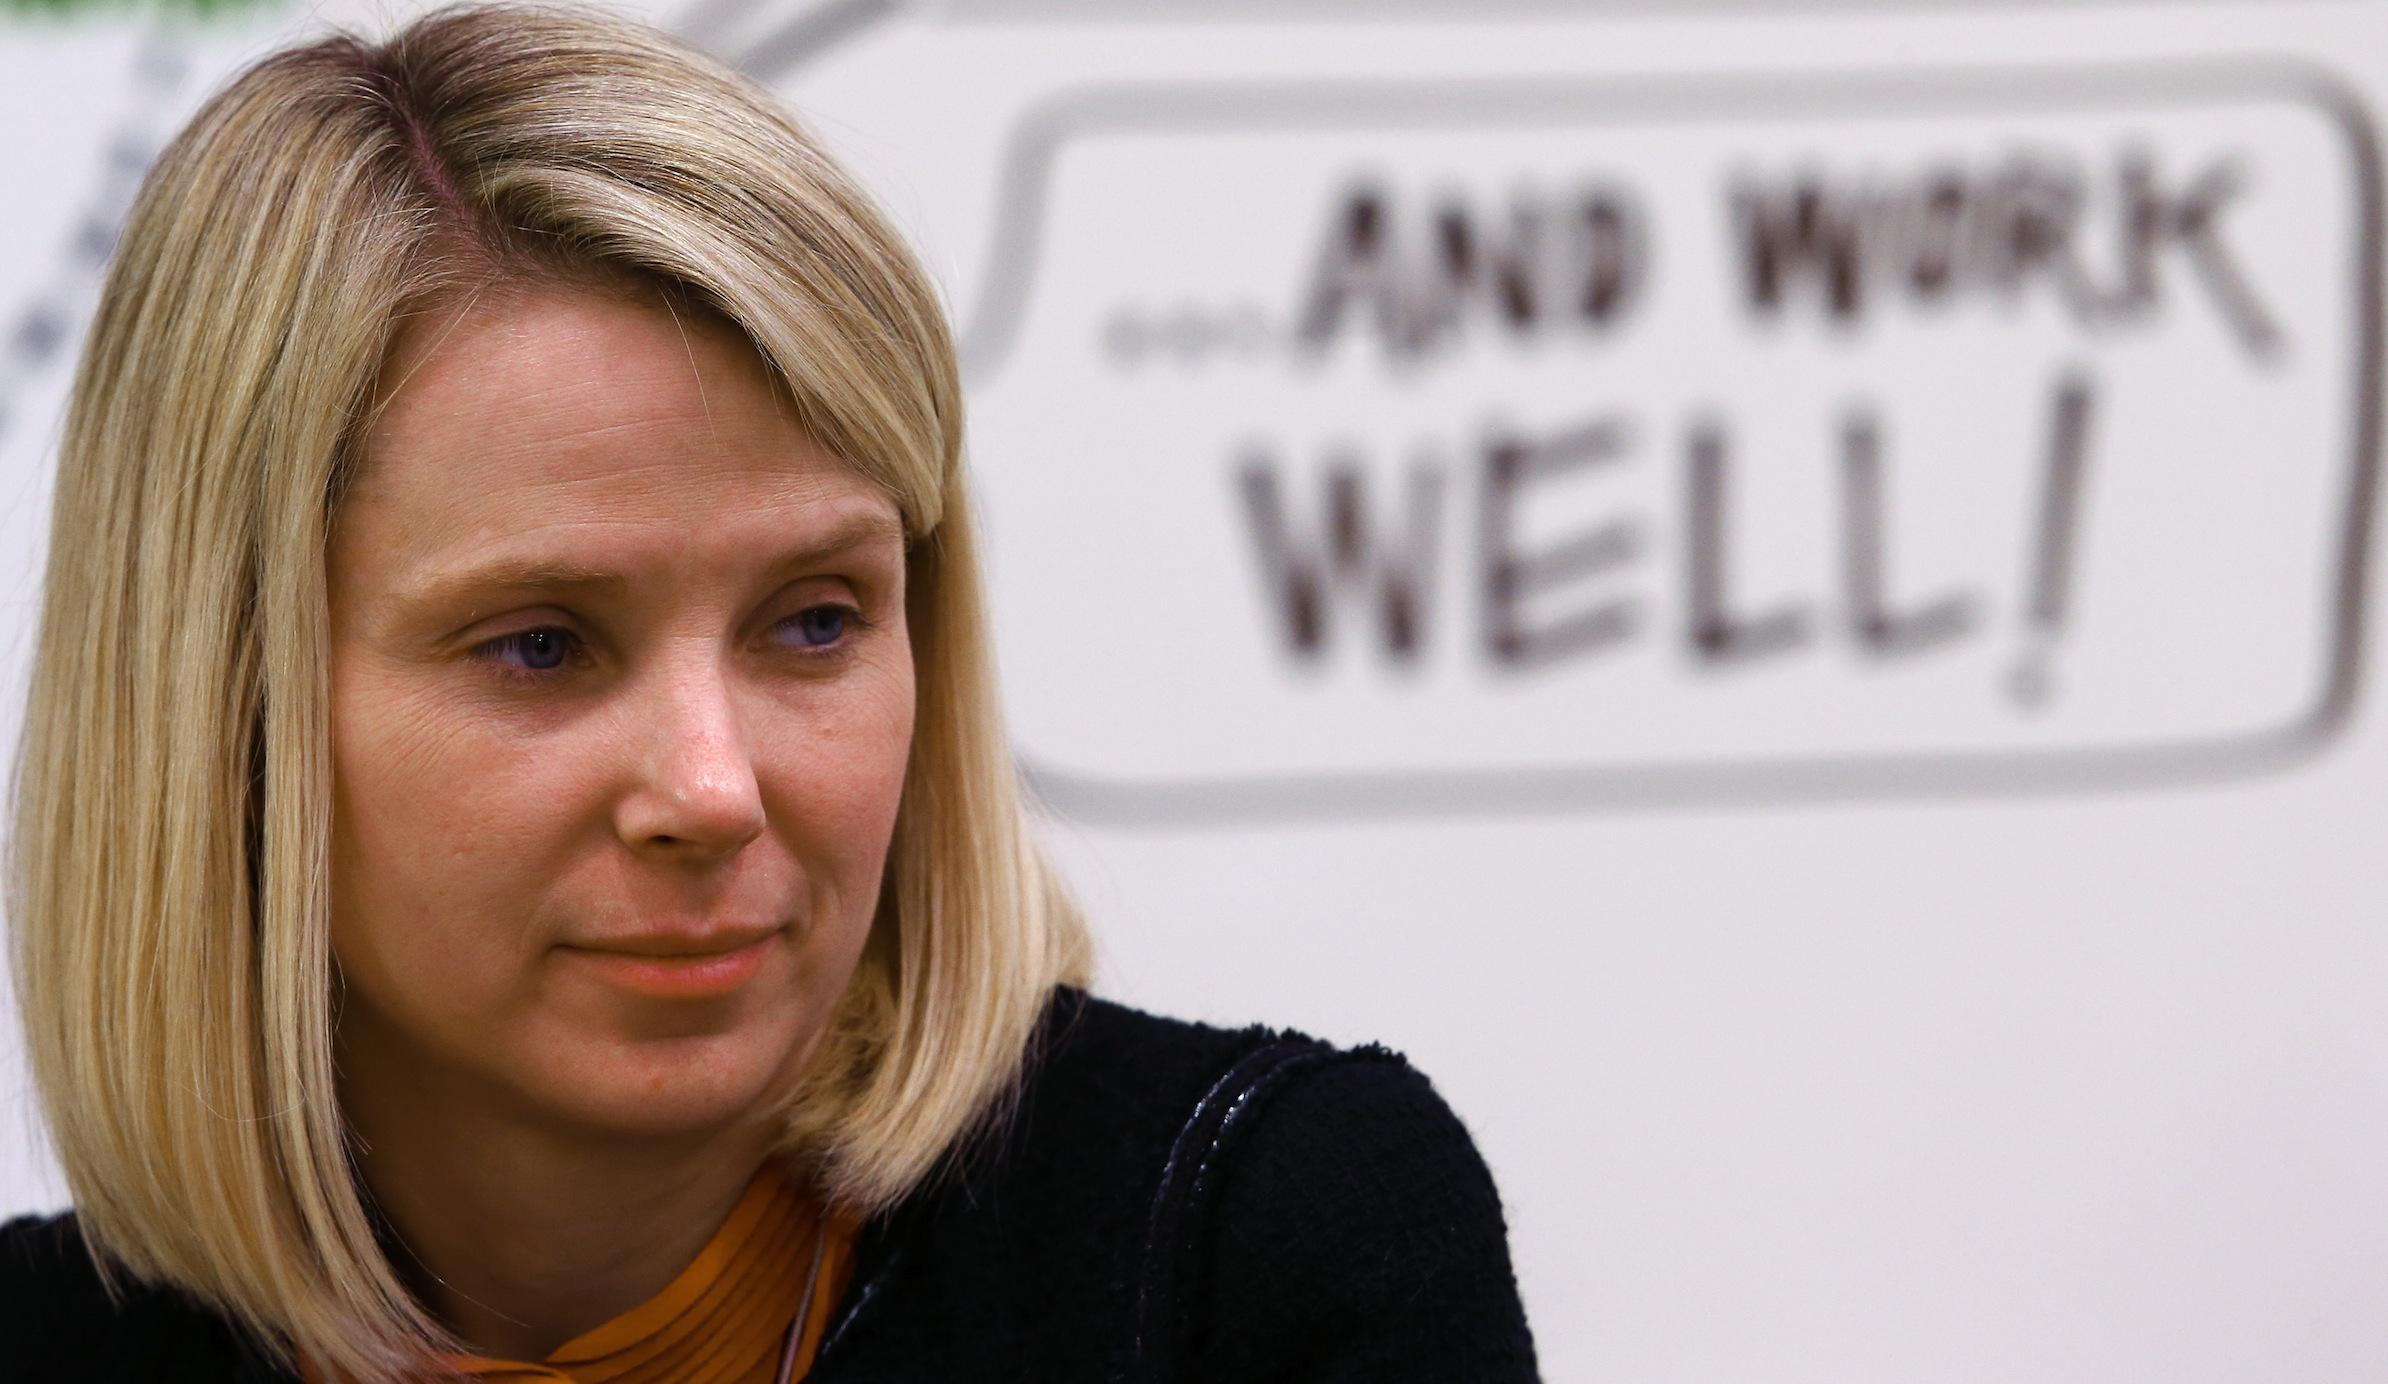 Marissa Mayer, Chief Executive Officer of Yahoo, Co-Chair of the World Economic Forum Annual Meeting 2014, attends a session at the annual meeting of the World Economic Forum (WEF) in Davos January 24, 2014. REUTERS/Denis Balibouse (SWITZERLAND - Tags: POLITICS BUSINESS) - RTX17SK0